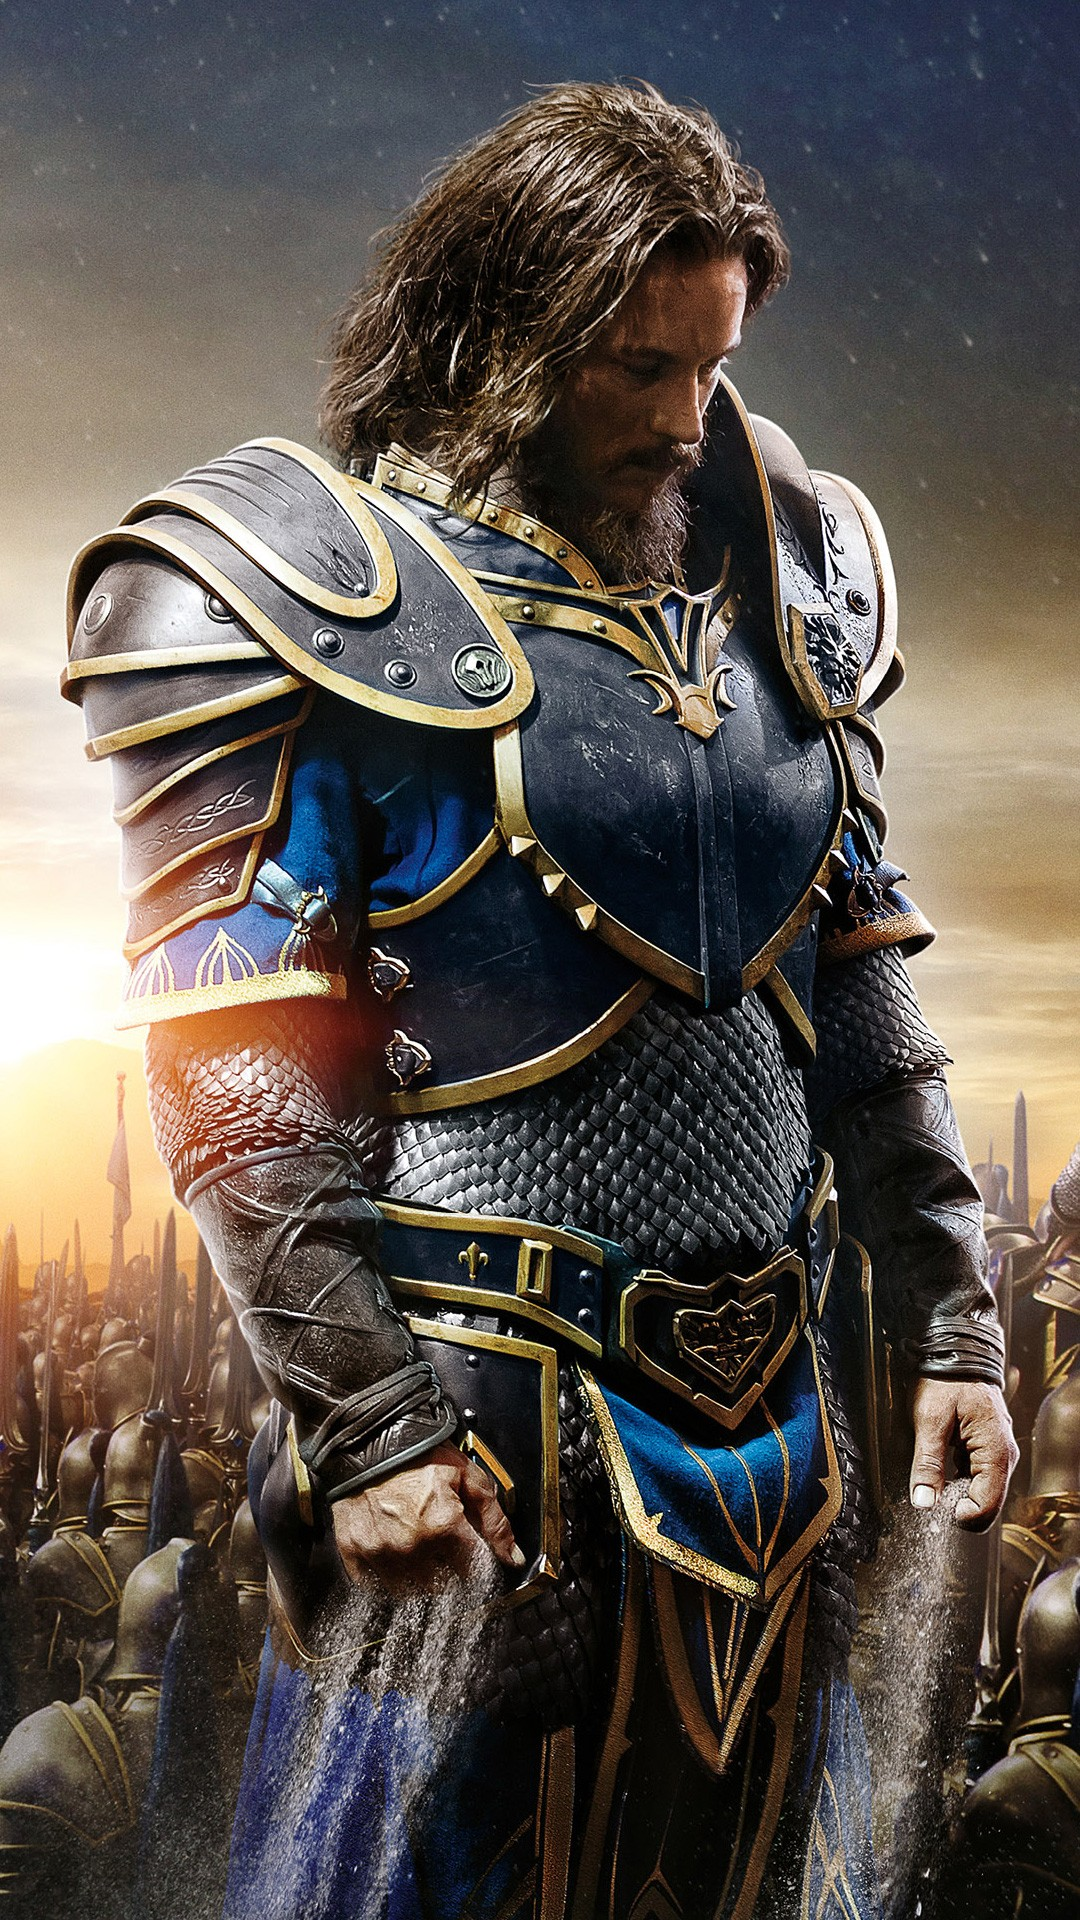 3d Galaxy Wallpaper Desktop Anduin Lothar Warcraft Movie Wallpapers Hd Wallpapers